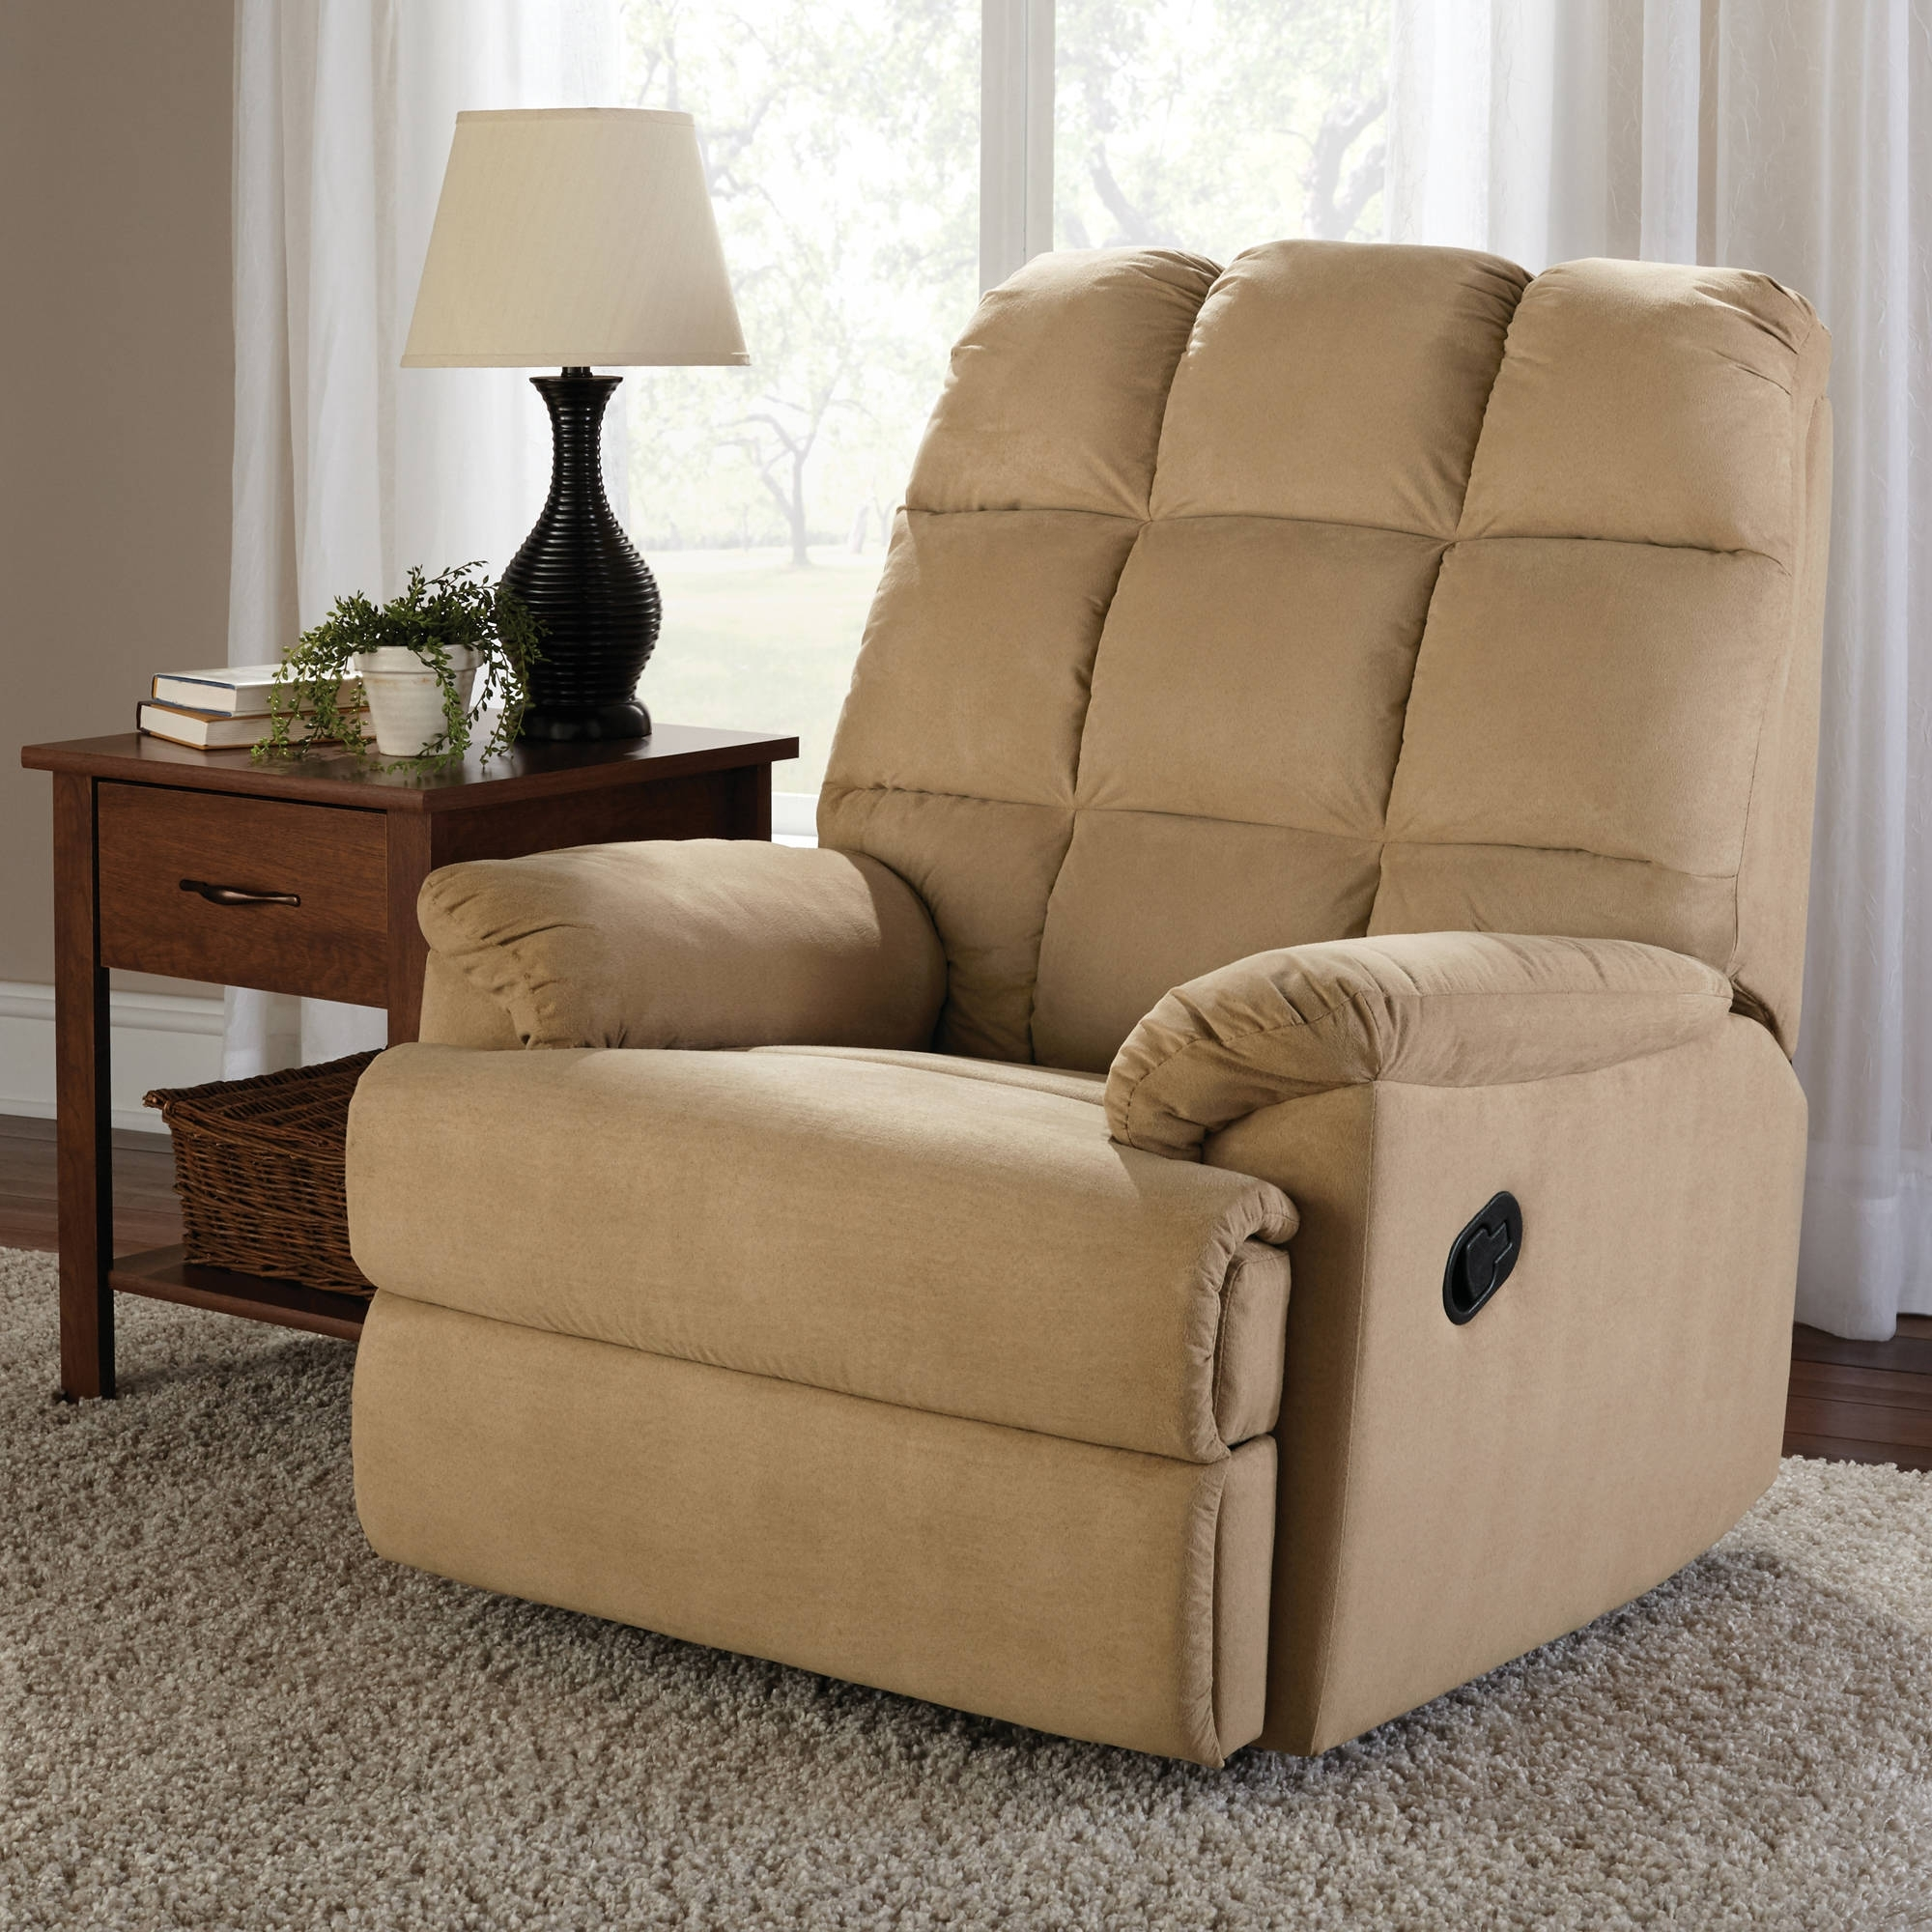 Mainstays Microsuede Rocker Recliner – Walmart Pertaining To Most Current Walmart Rocking Chairs (View 8 of 20)